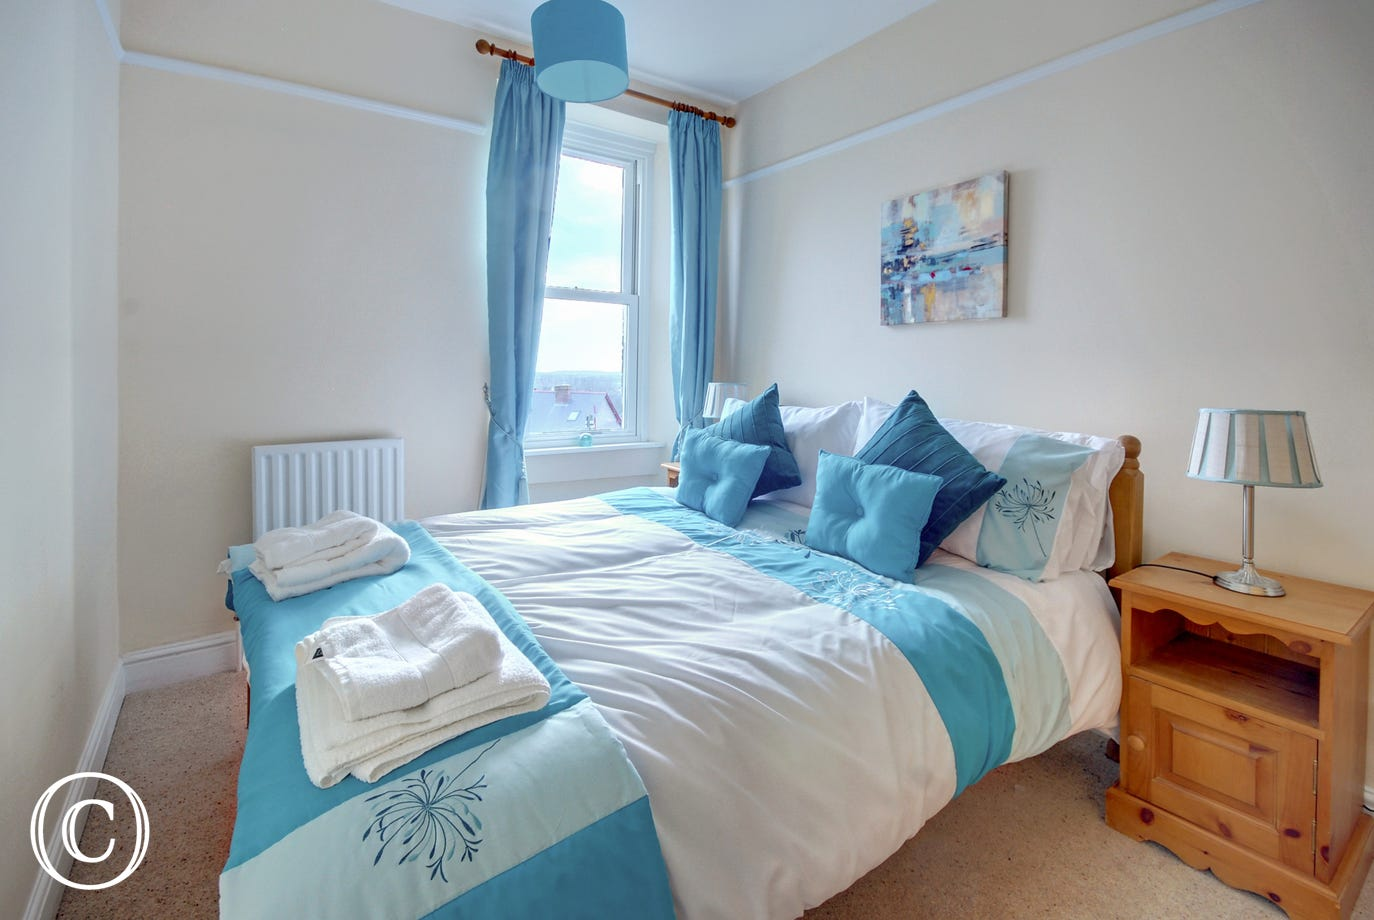 Brightly decorated double bedroom on the top floor of the property